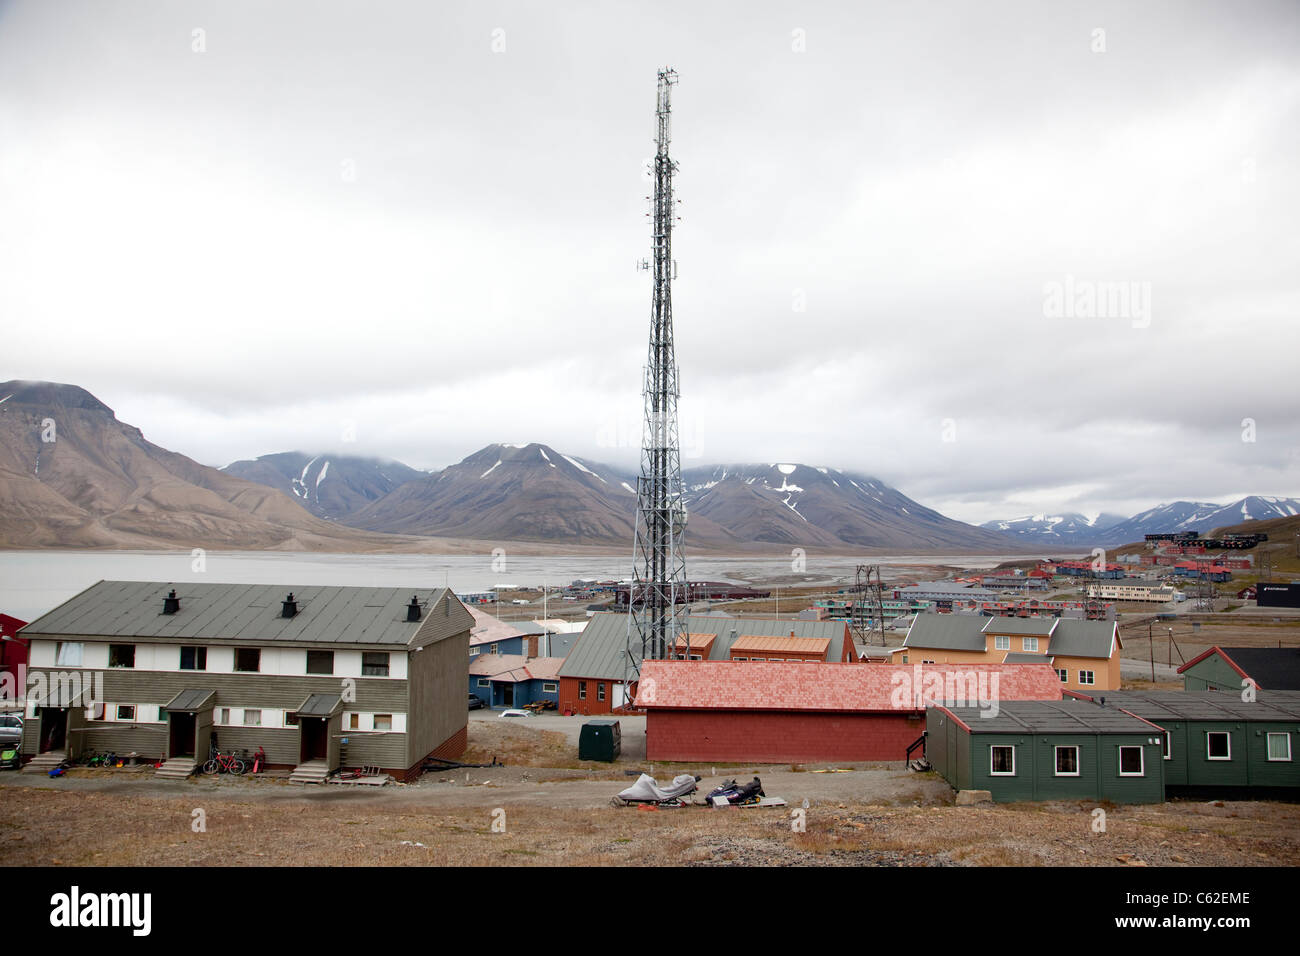 Image shows Longyearbyen, the largest settlement of Svalbard archipelago, Norway. Photo:Jeff Gilbert Stock Photo